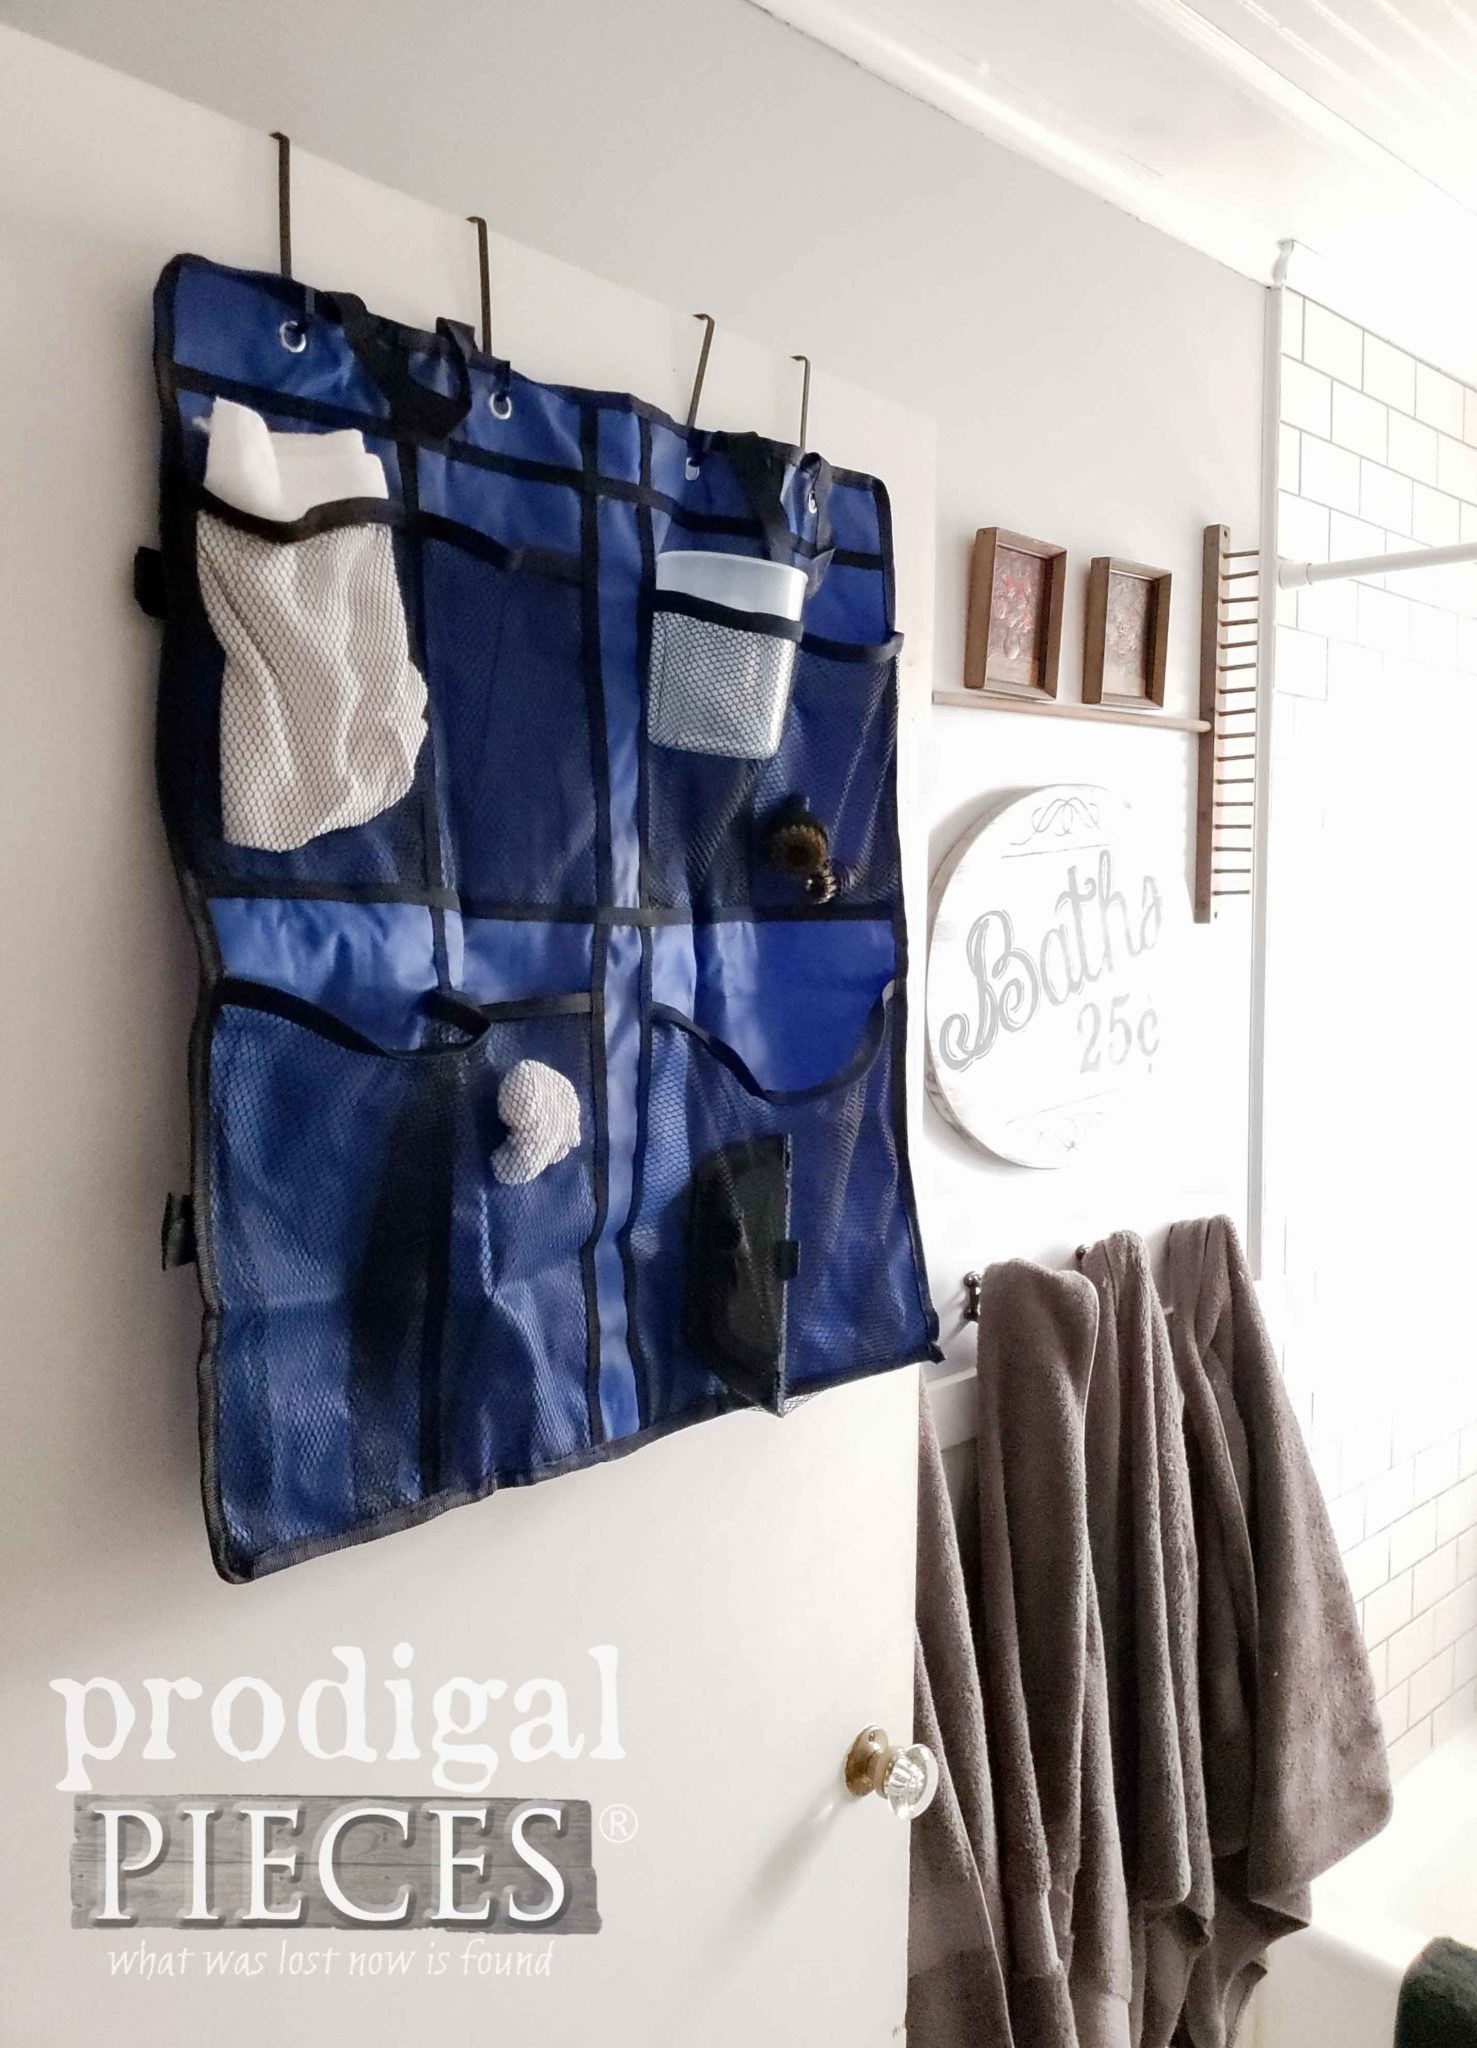 HomeRight Accessory Bag Hanging on Bathroom Door | prodigalpieces.com